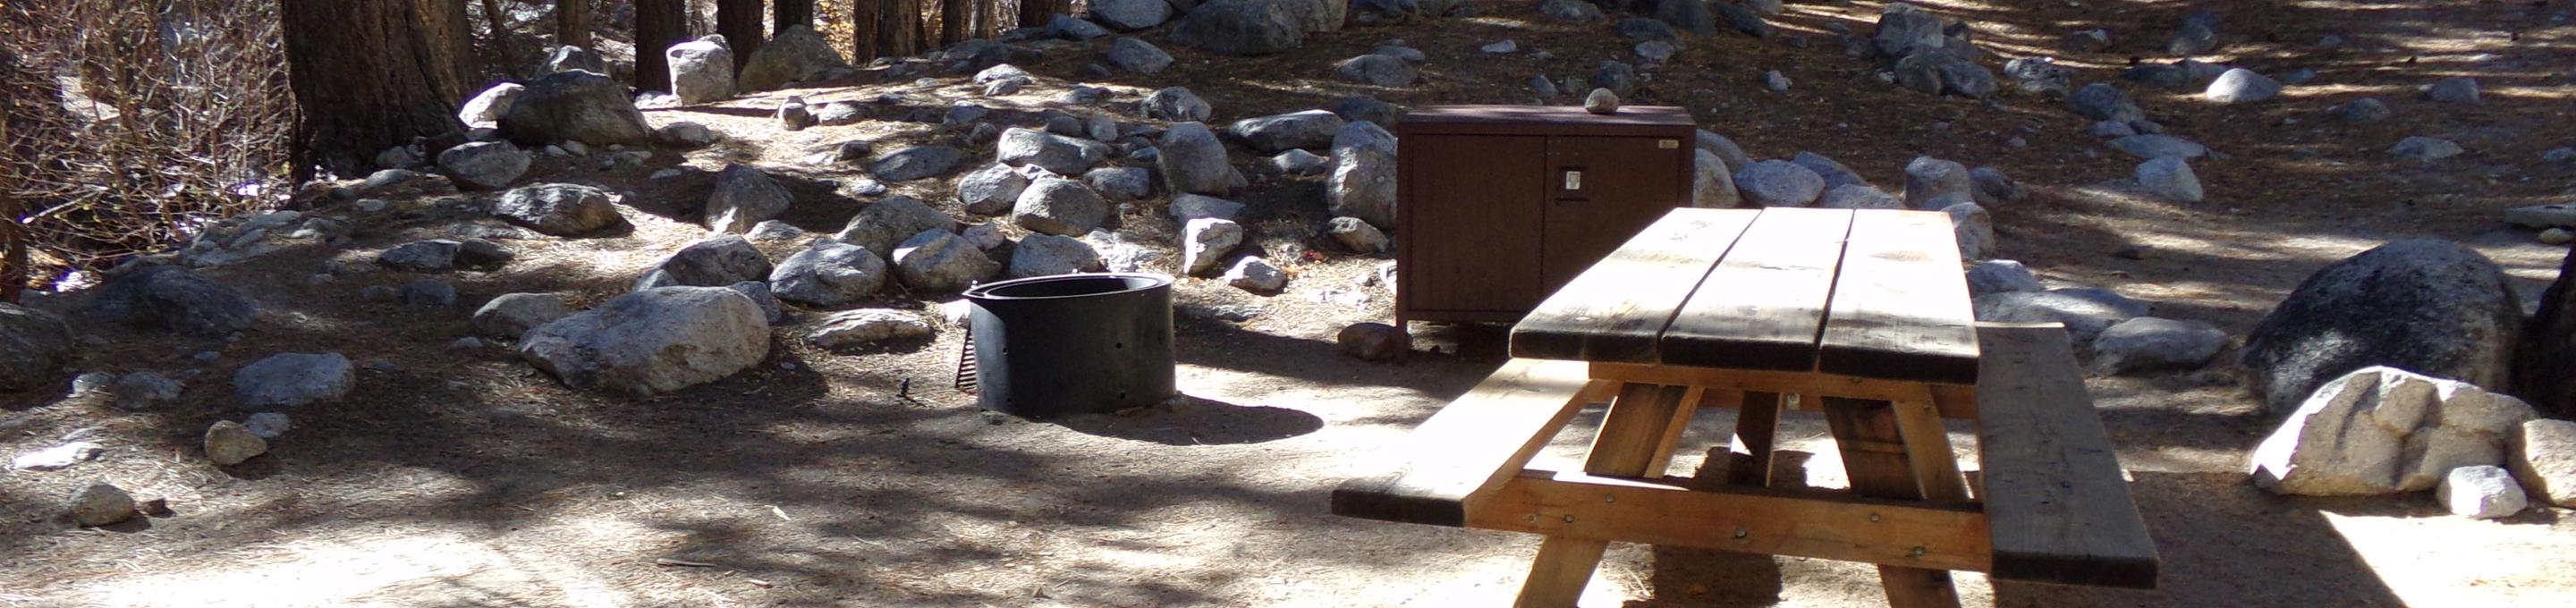 Mt. Whitney Portal Campground site #33 featuring the mountain top setting picnic area and camping space.